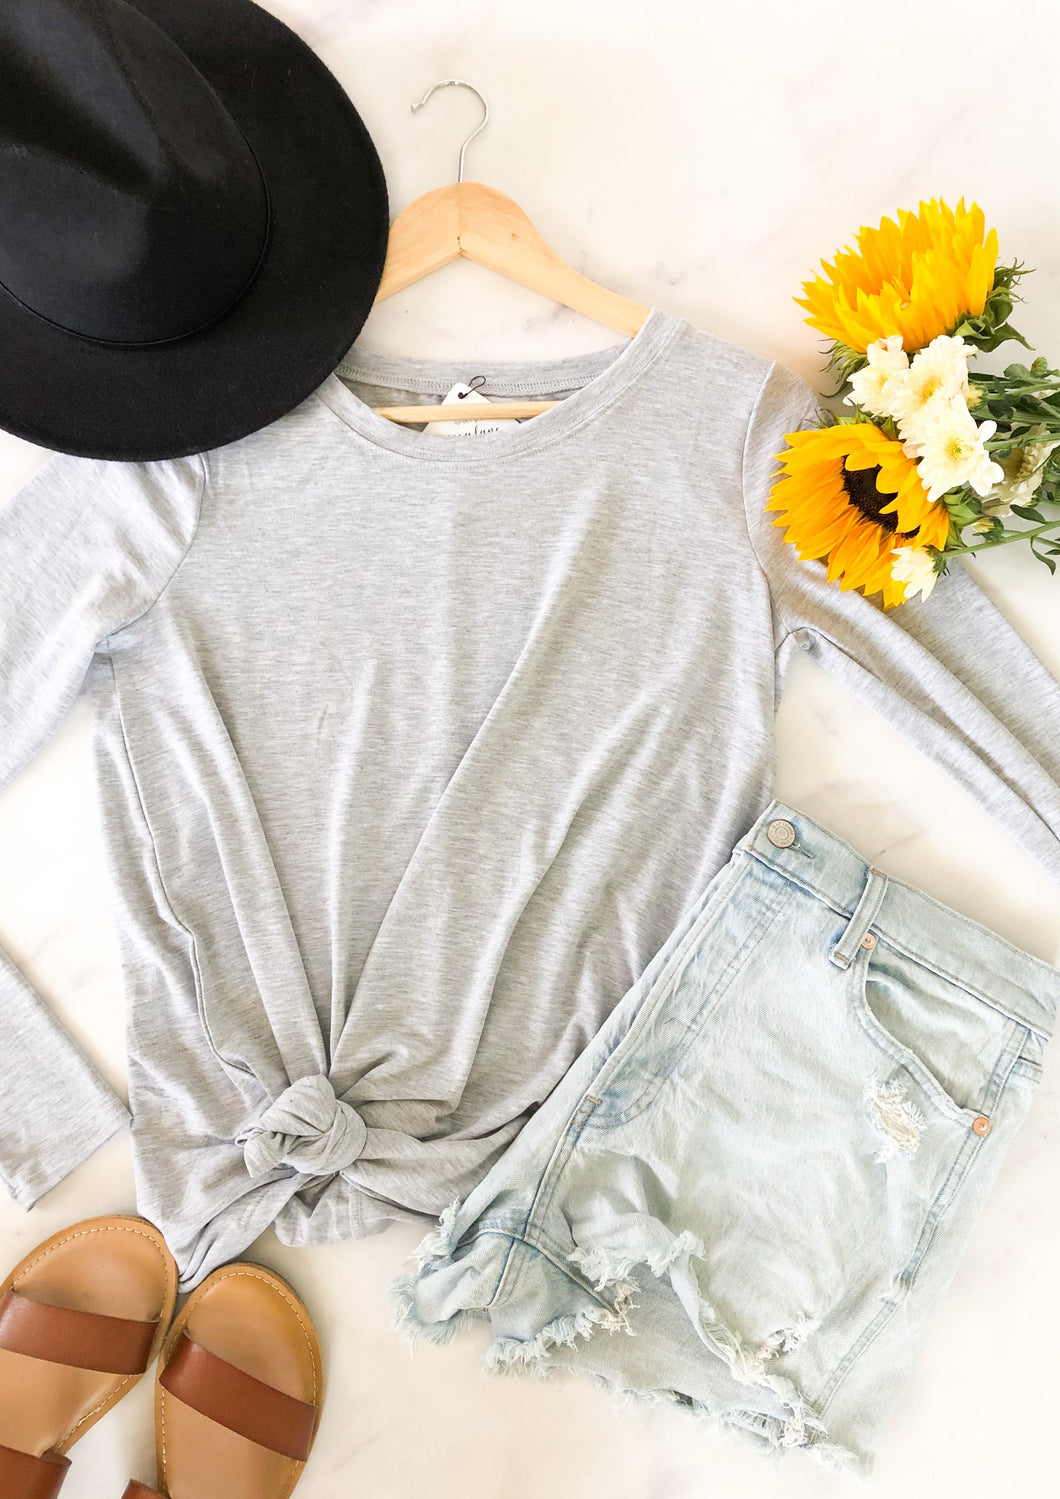 The Basic Round Hem Top in Heather Grey